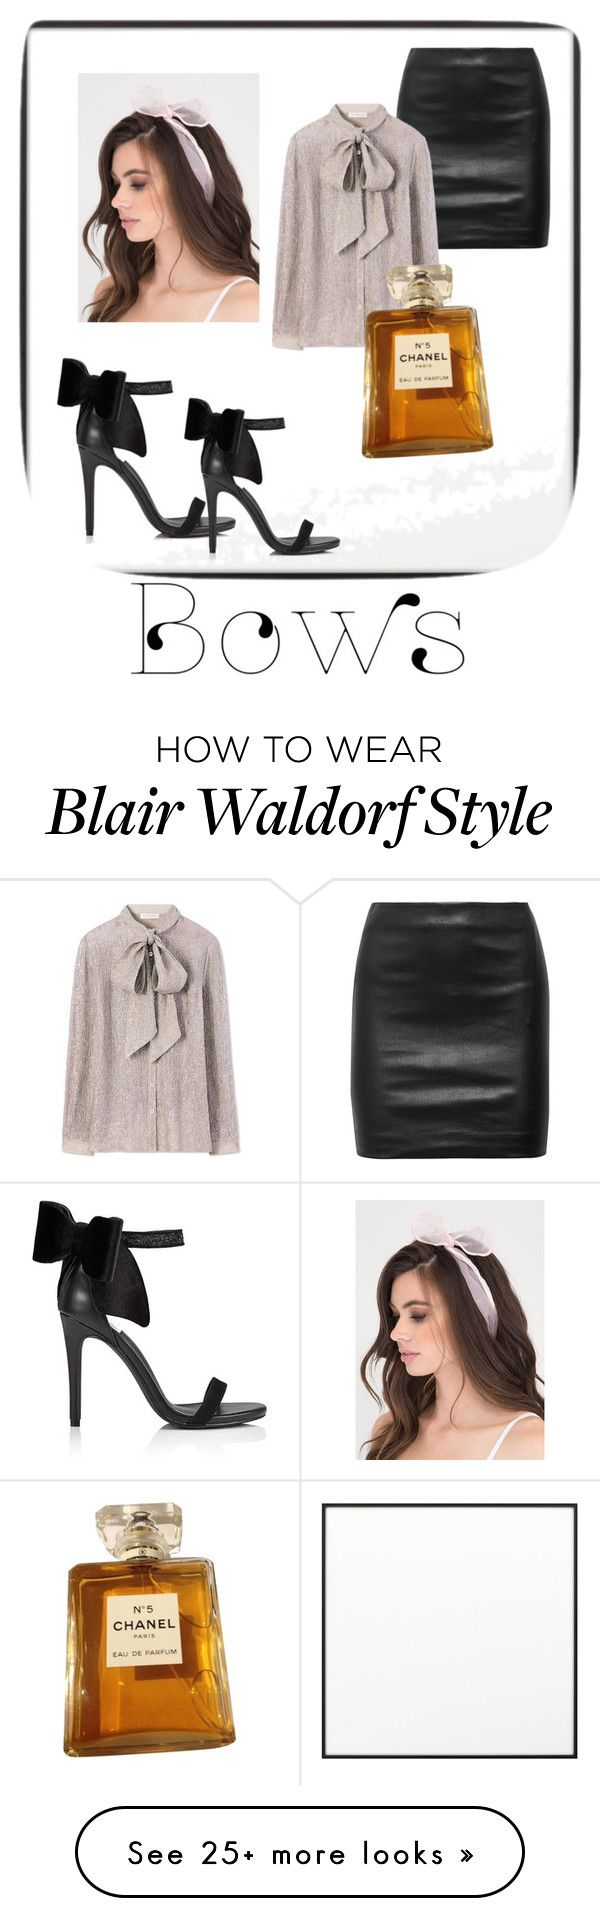 """BOWS: Blair Waldorf Edition"" by carylvondrea on Polyvore featuring By Lassen, The Row, Tory Burch, Miss Selfridge and Chanel"